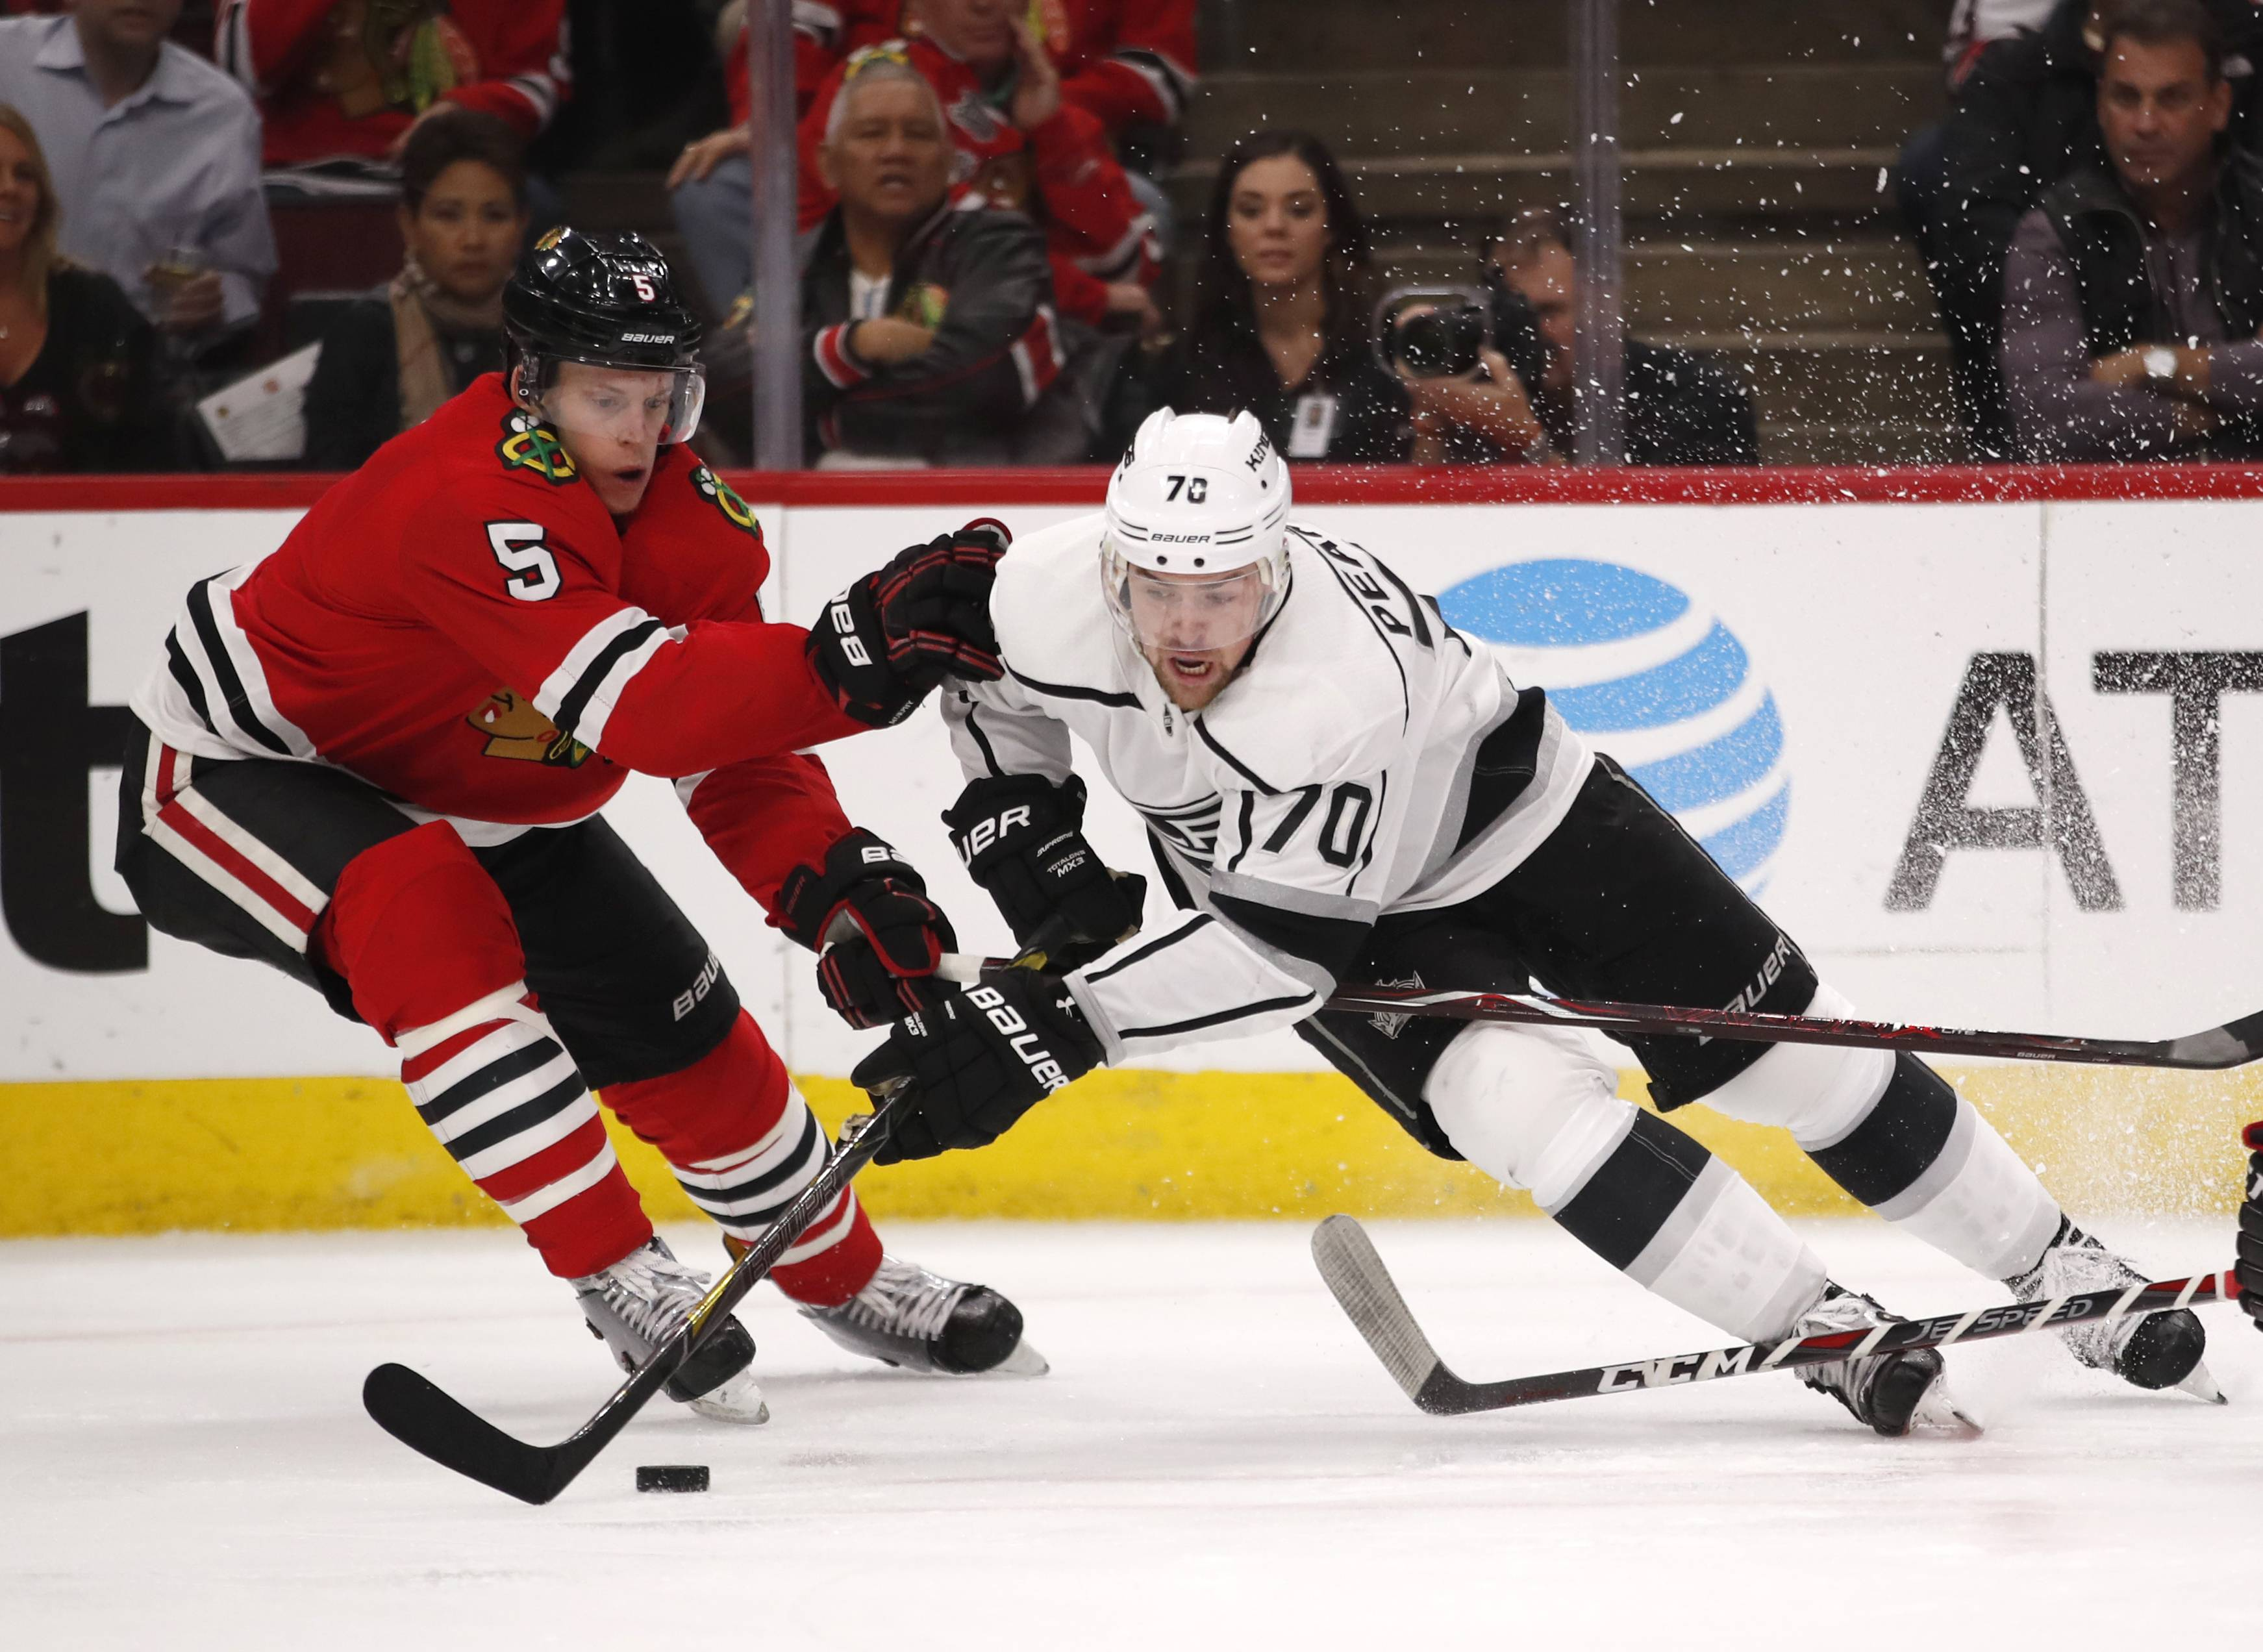 Los Angeles Kings left wing Tanner Pearson (70) tries to get past Chicago Blackhawks defenseman Connor Murphy (5) with the puck during the second period of an NHL hockey game Monday, Feb. 19, 2018, in Chicago. (AP Photo/Jeff Haynes)